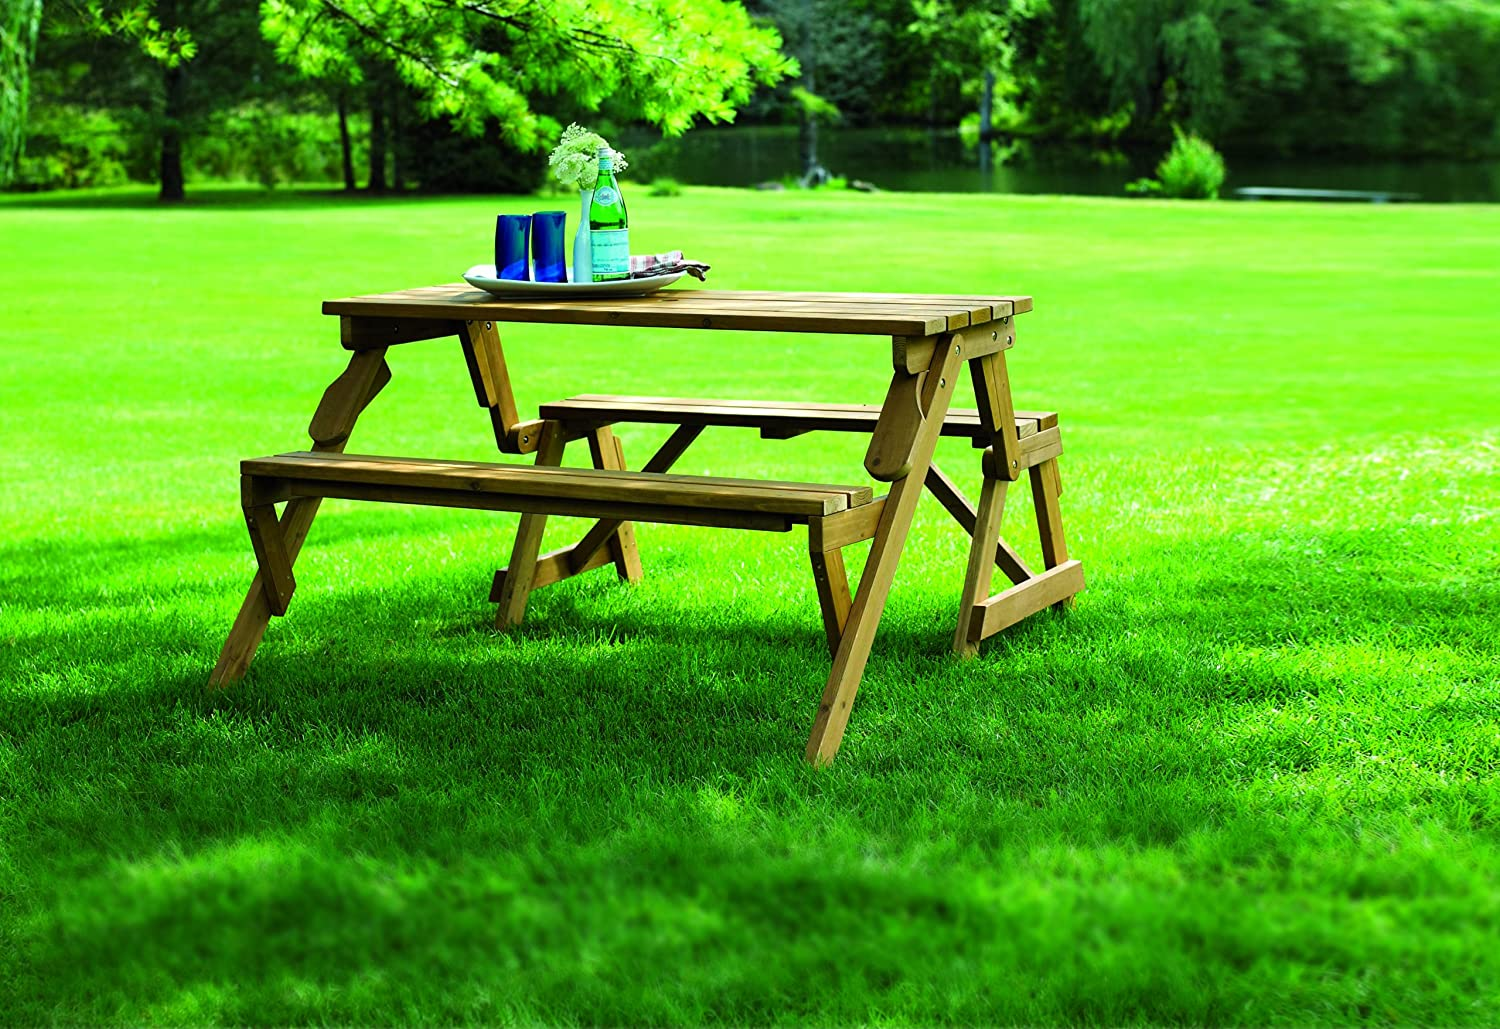 Amazon.com : Merry Garden Interchangeable Picnic Table And Garden Bench :  Garden U0026 Outdoor